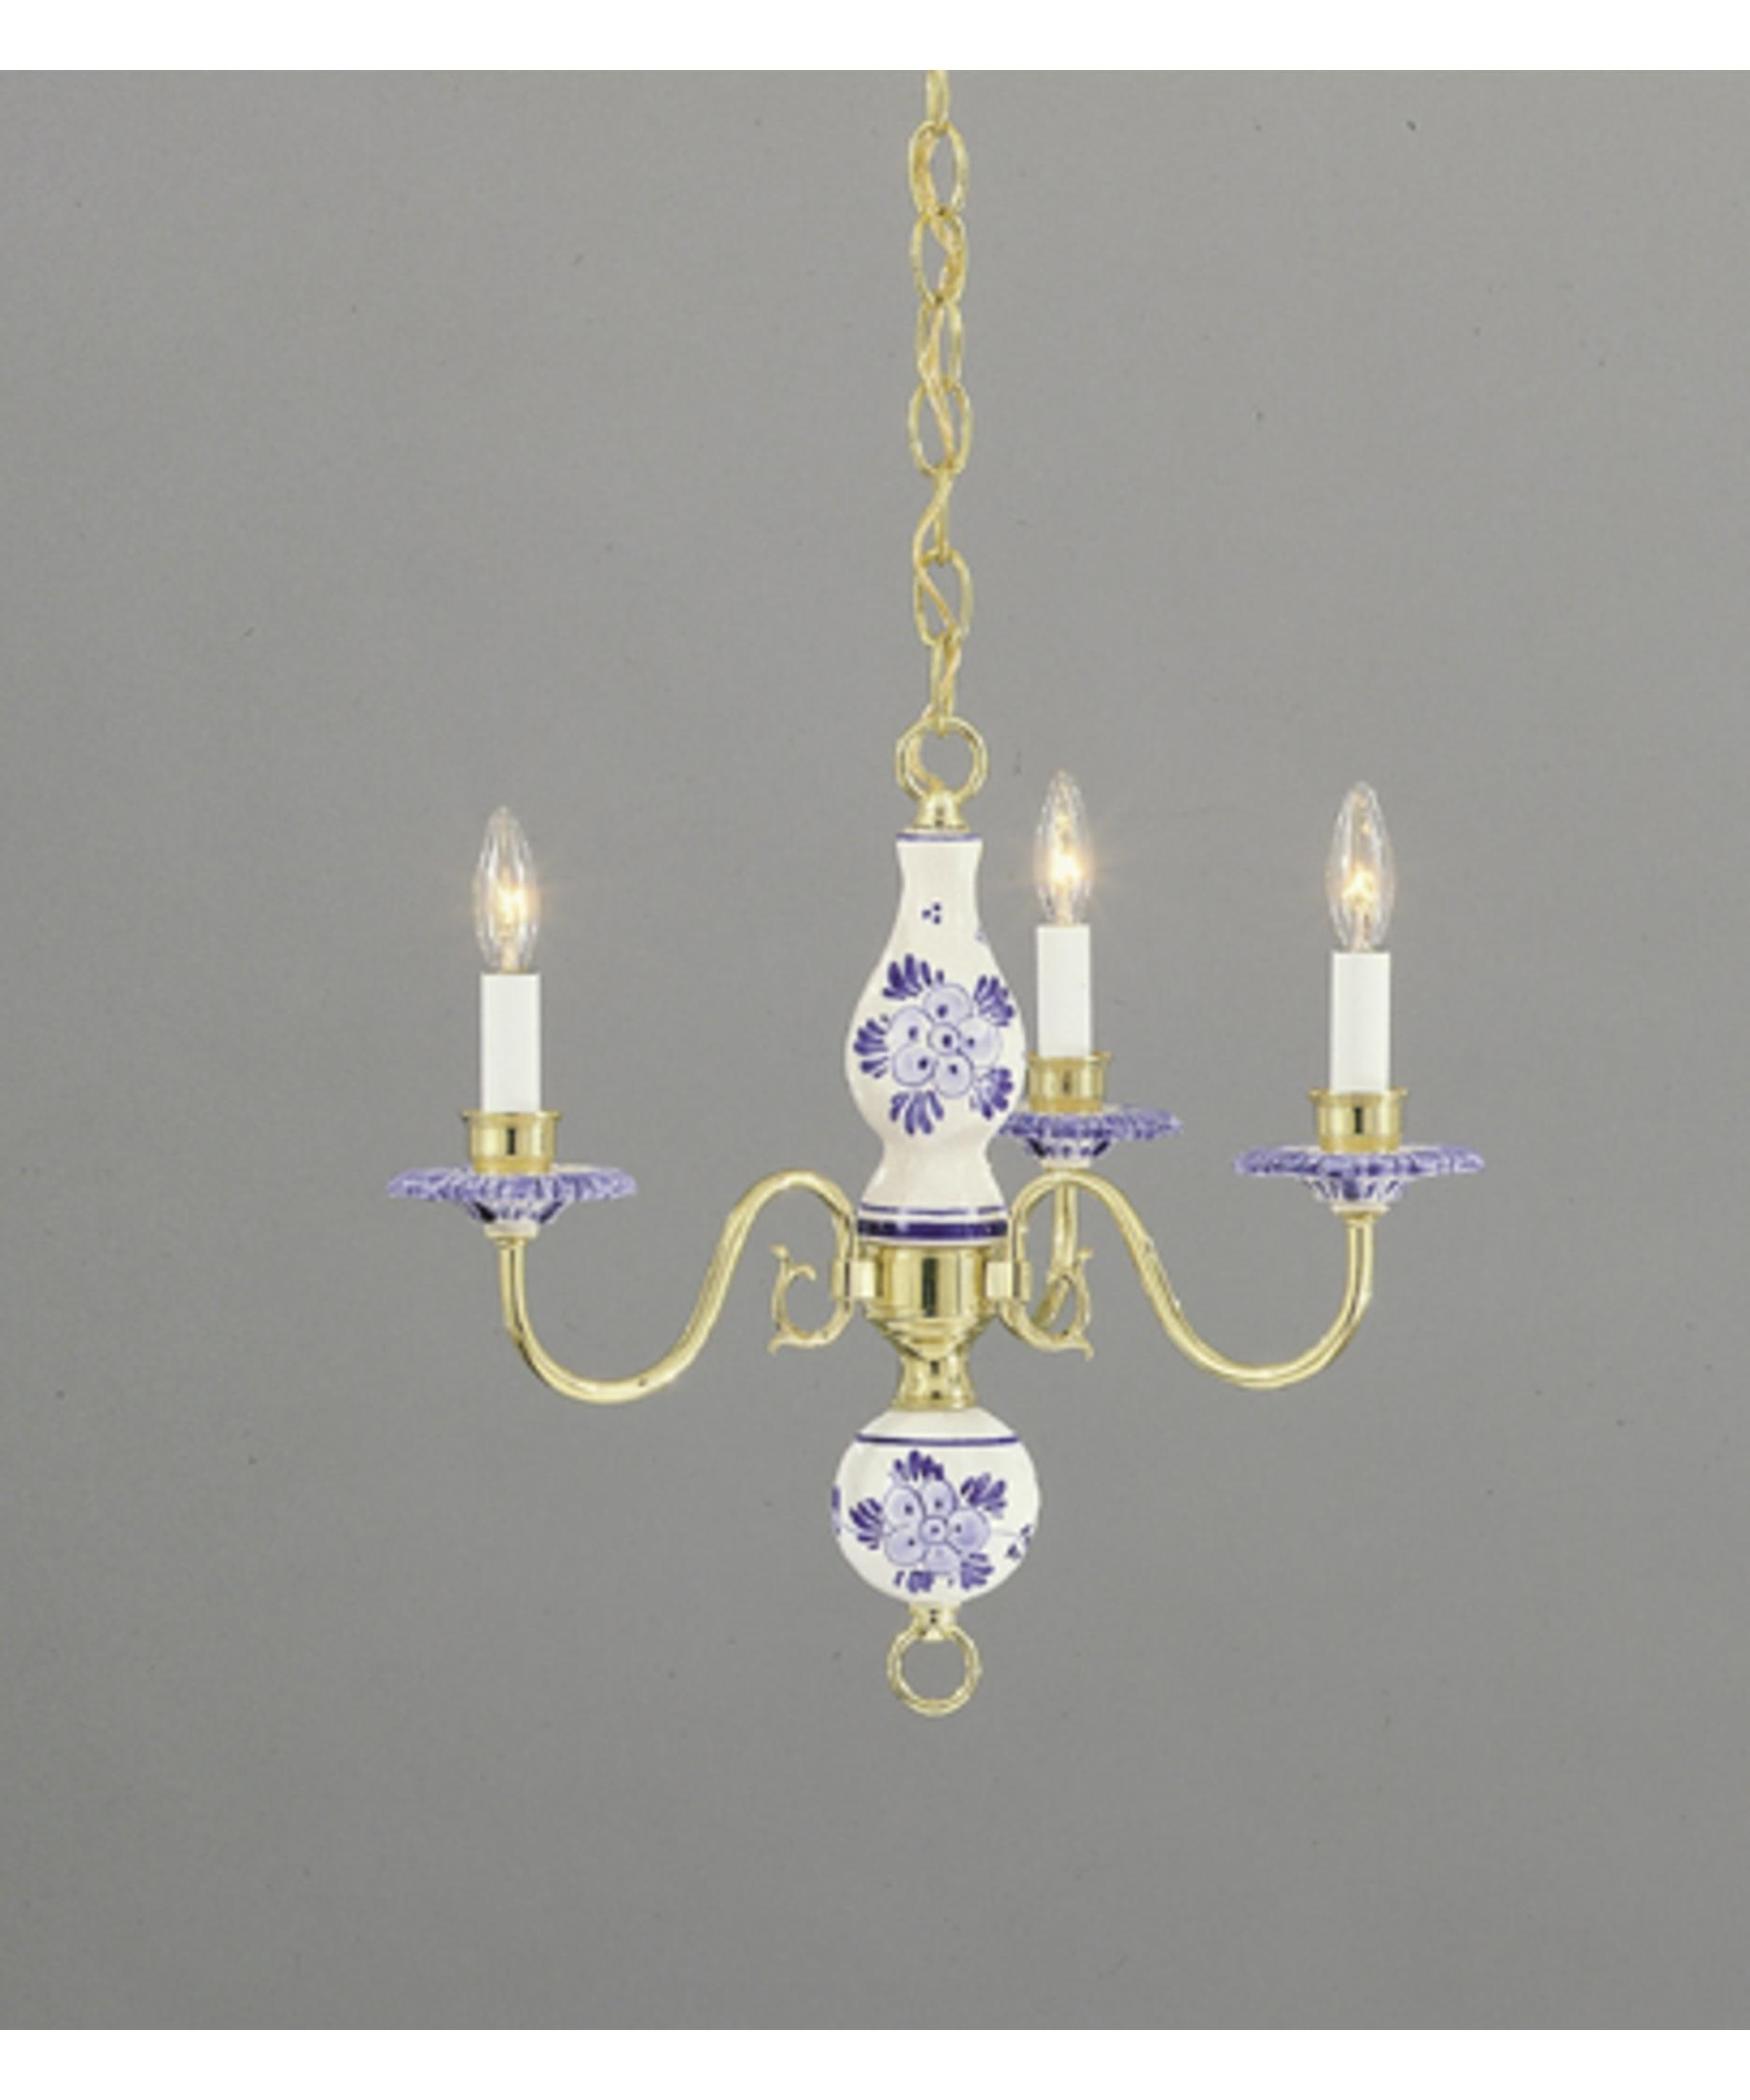 nulco lighting  delft  inch wide  light mini chandelier  - shown in polished brass finish with blue delft